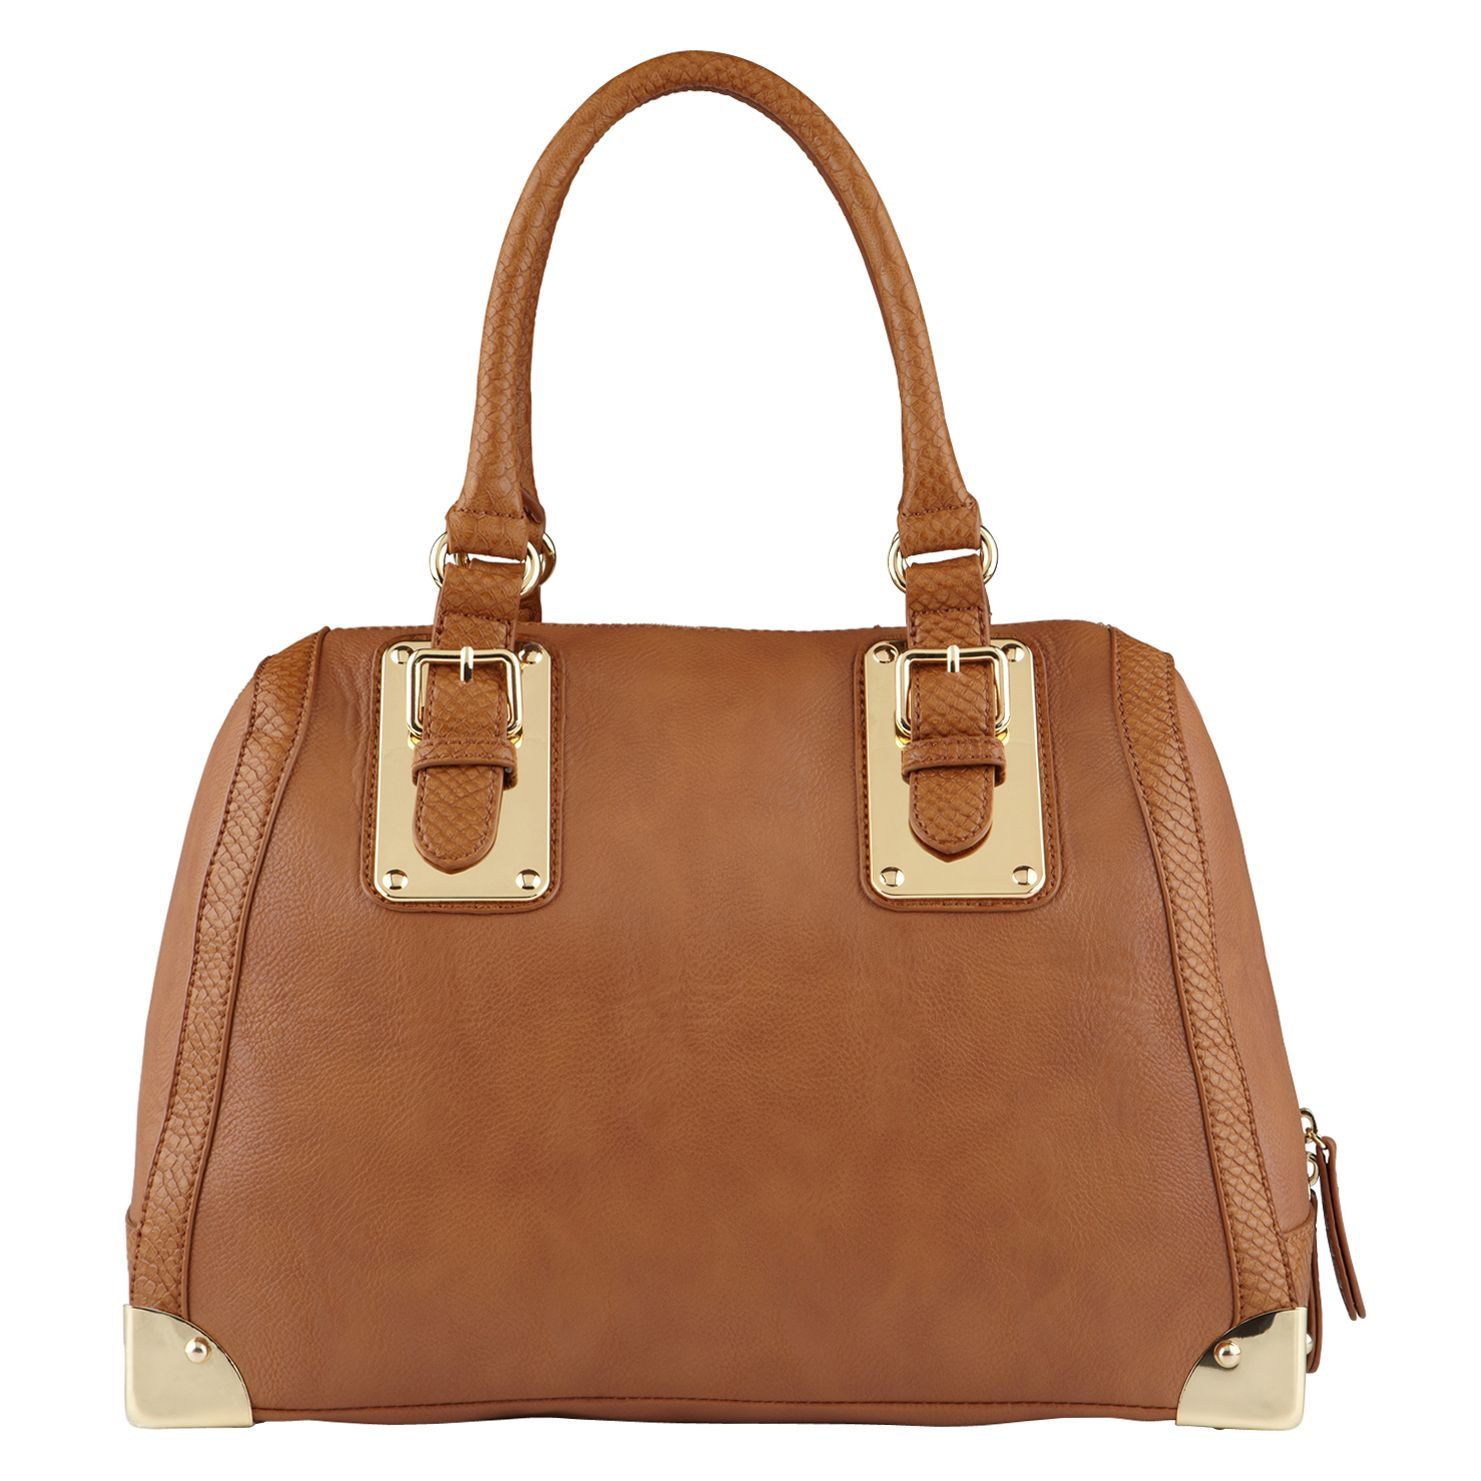 Migliarino shoulder bag